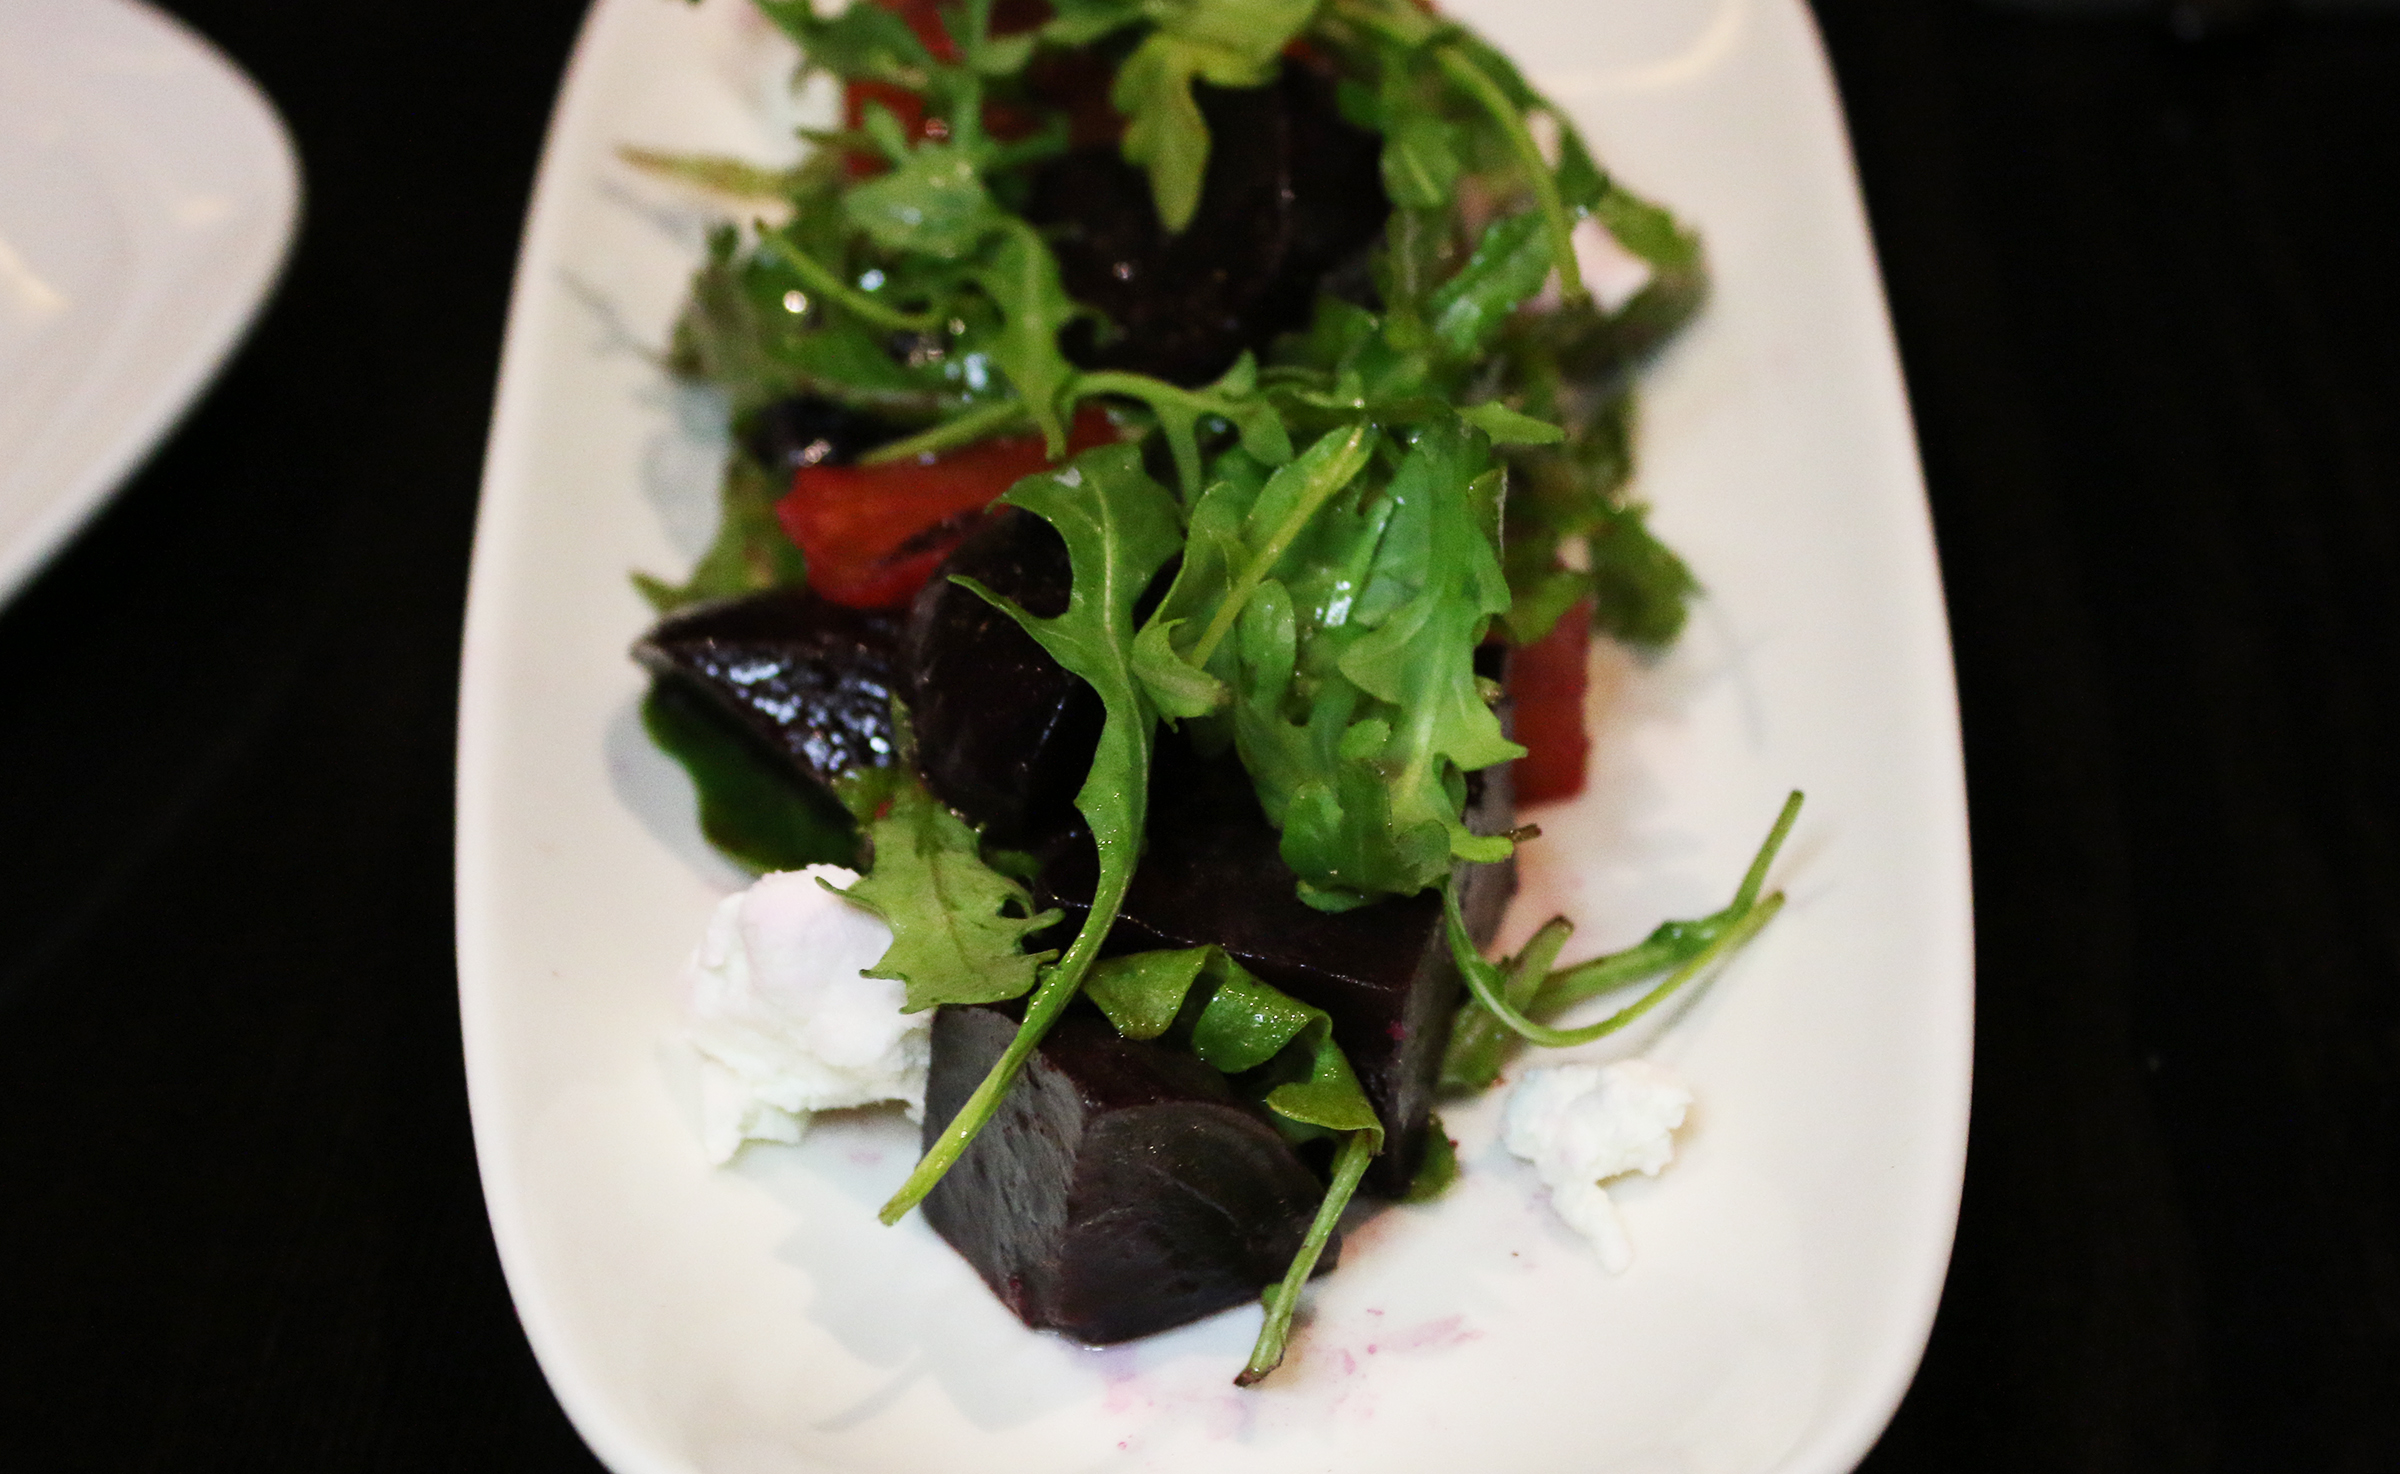 Roasted Beet Salad: Arugula, Goat Cheese, Sherry Vinaigrette